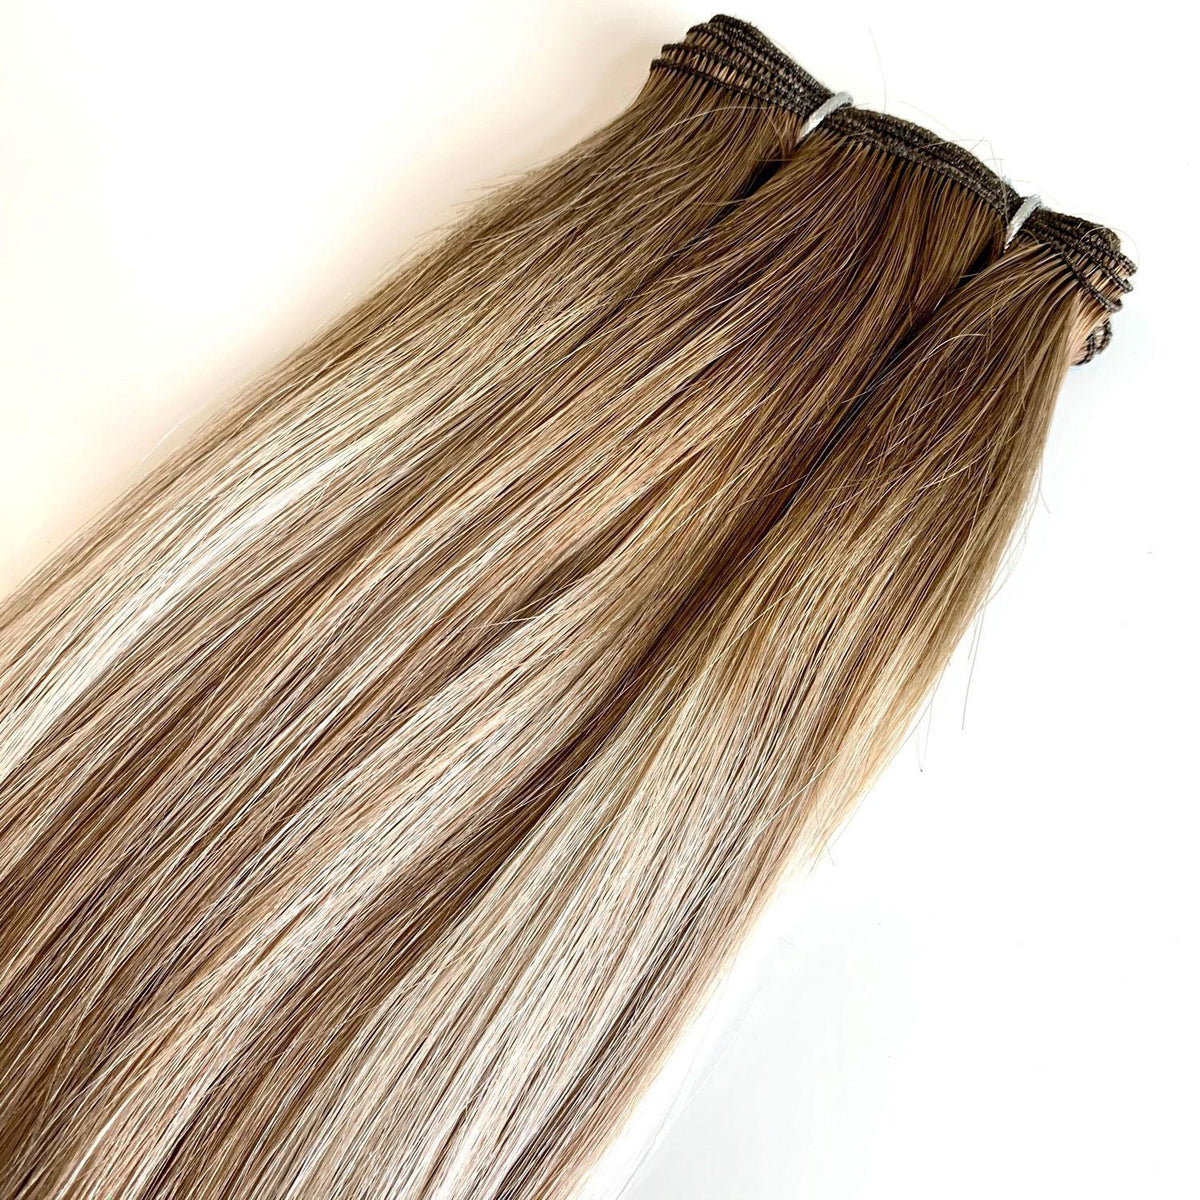 Halfsies Machine Sewn Weft Extensions Rooted #6/D8/60